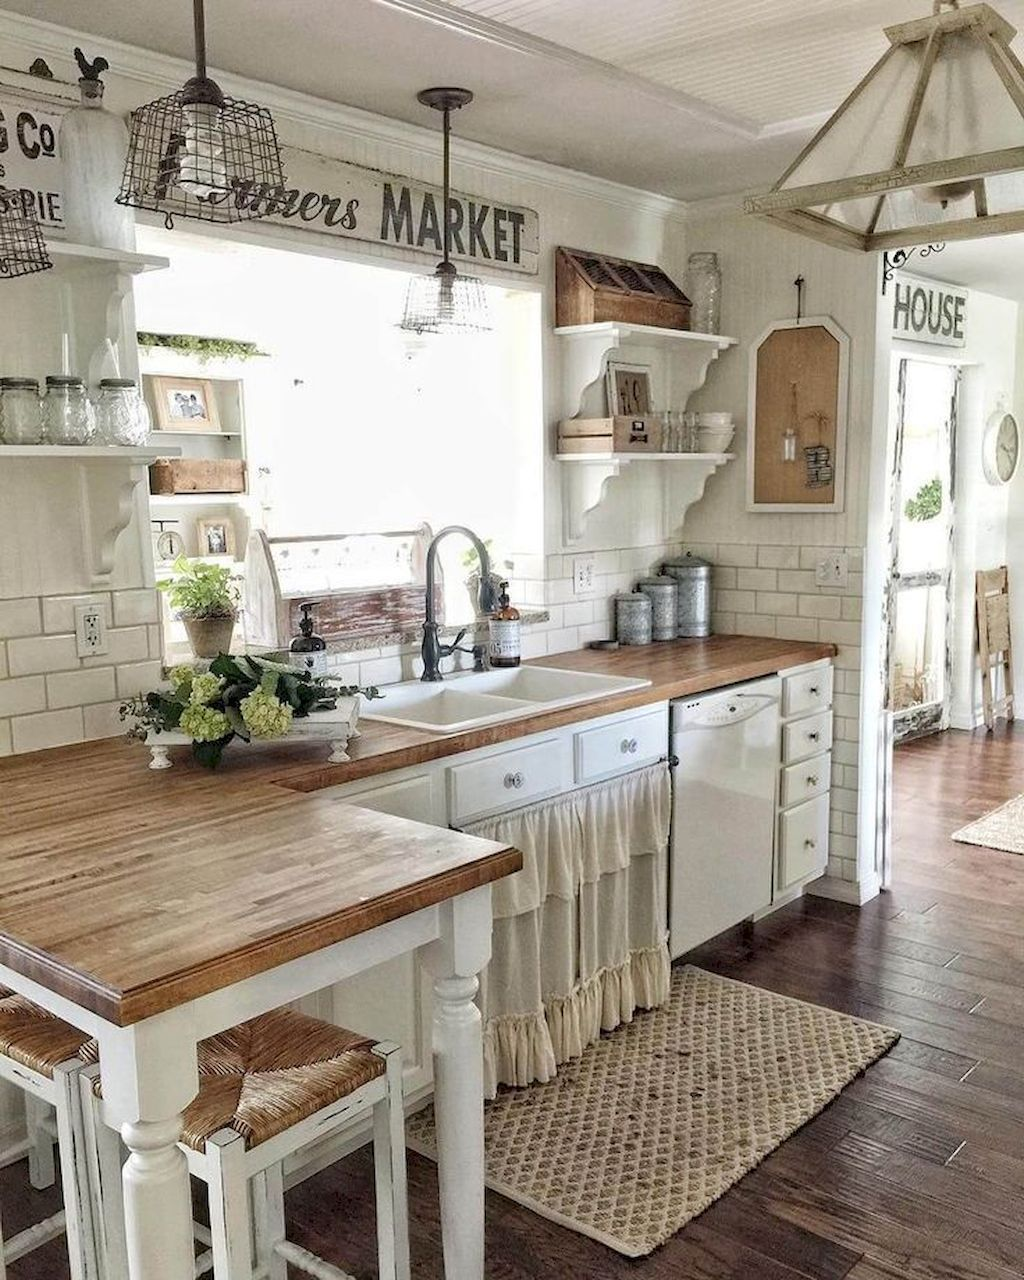 13 Modern Rustic Farmhouse Kitchen Cabinets Ideas White Kitchen Remodeling Kitchen Remodel Small Rustic Kitchen Cabinets